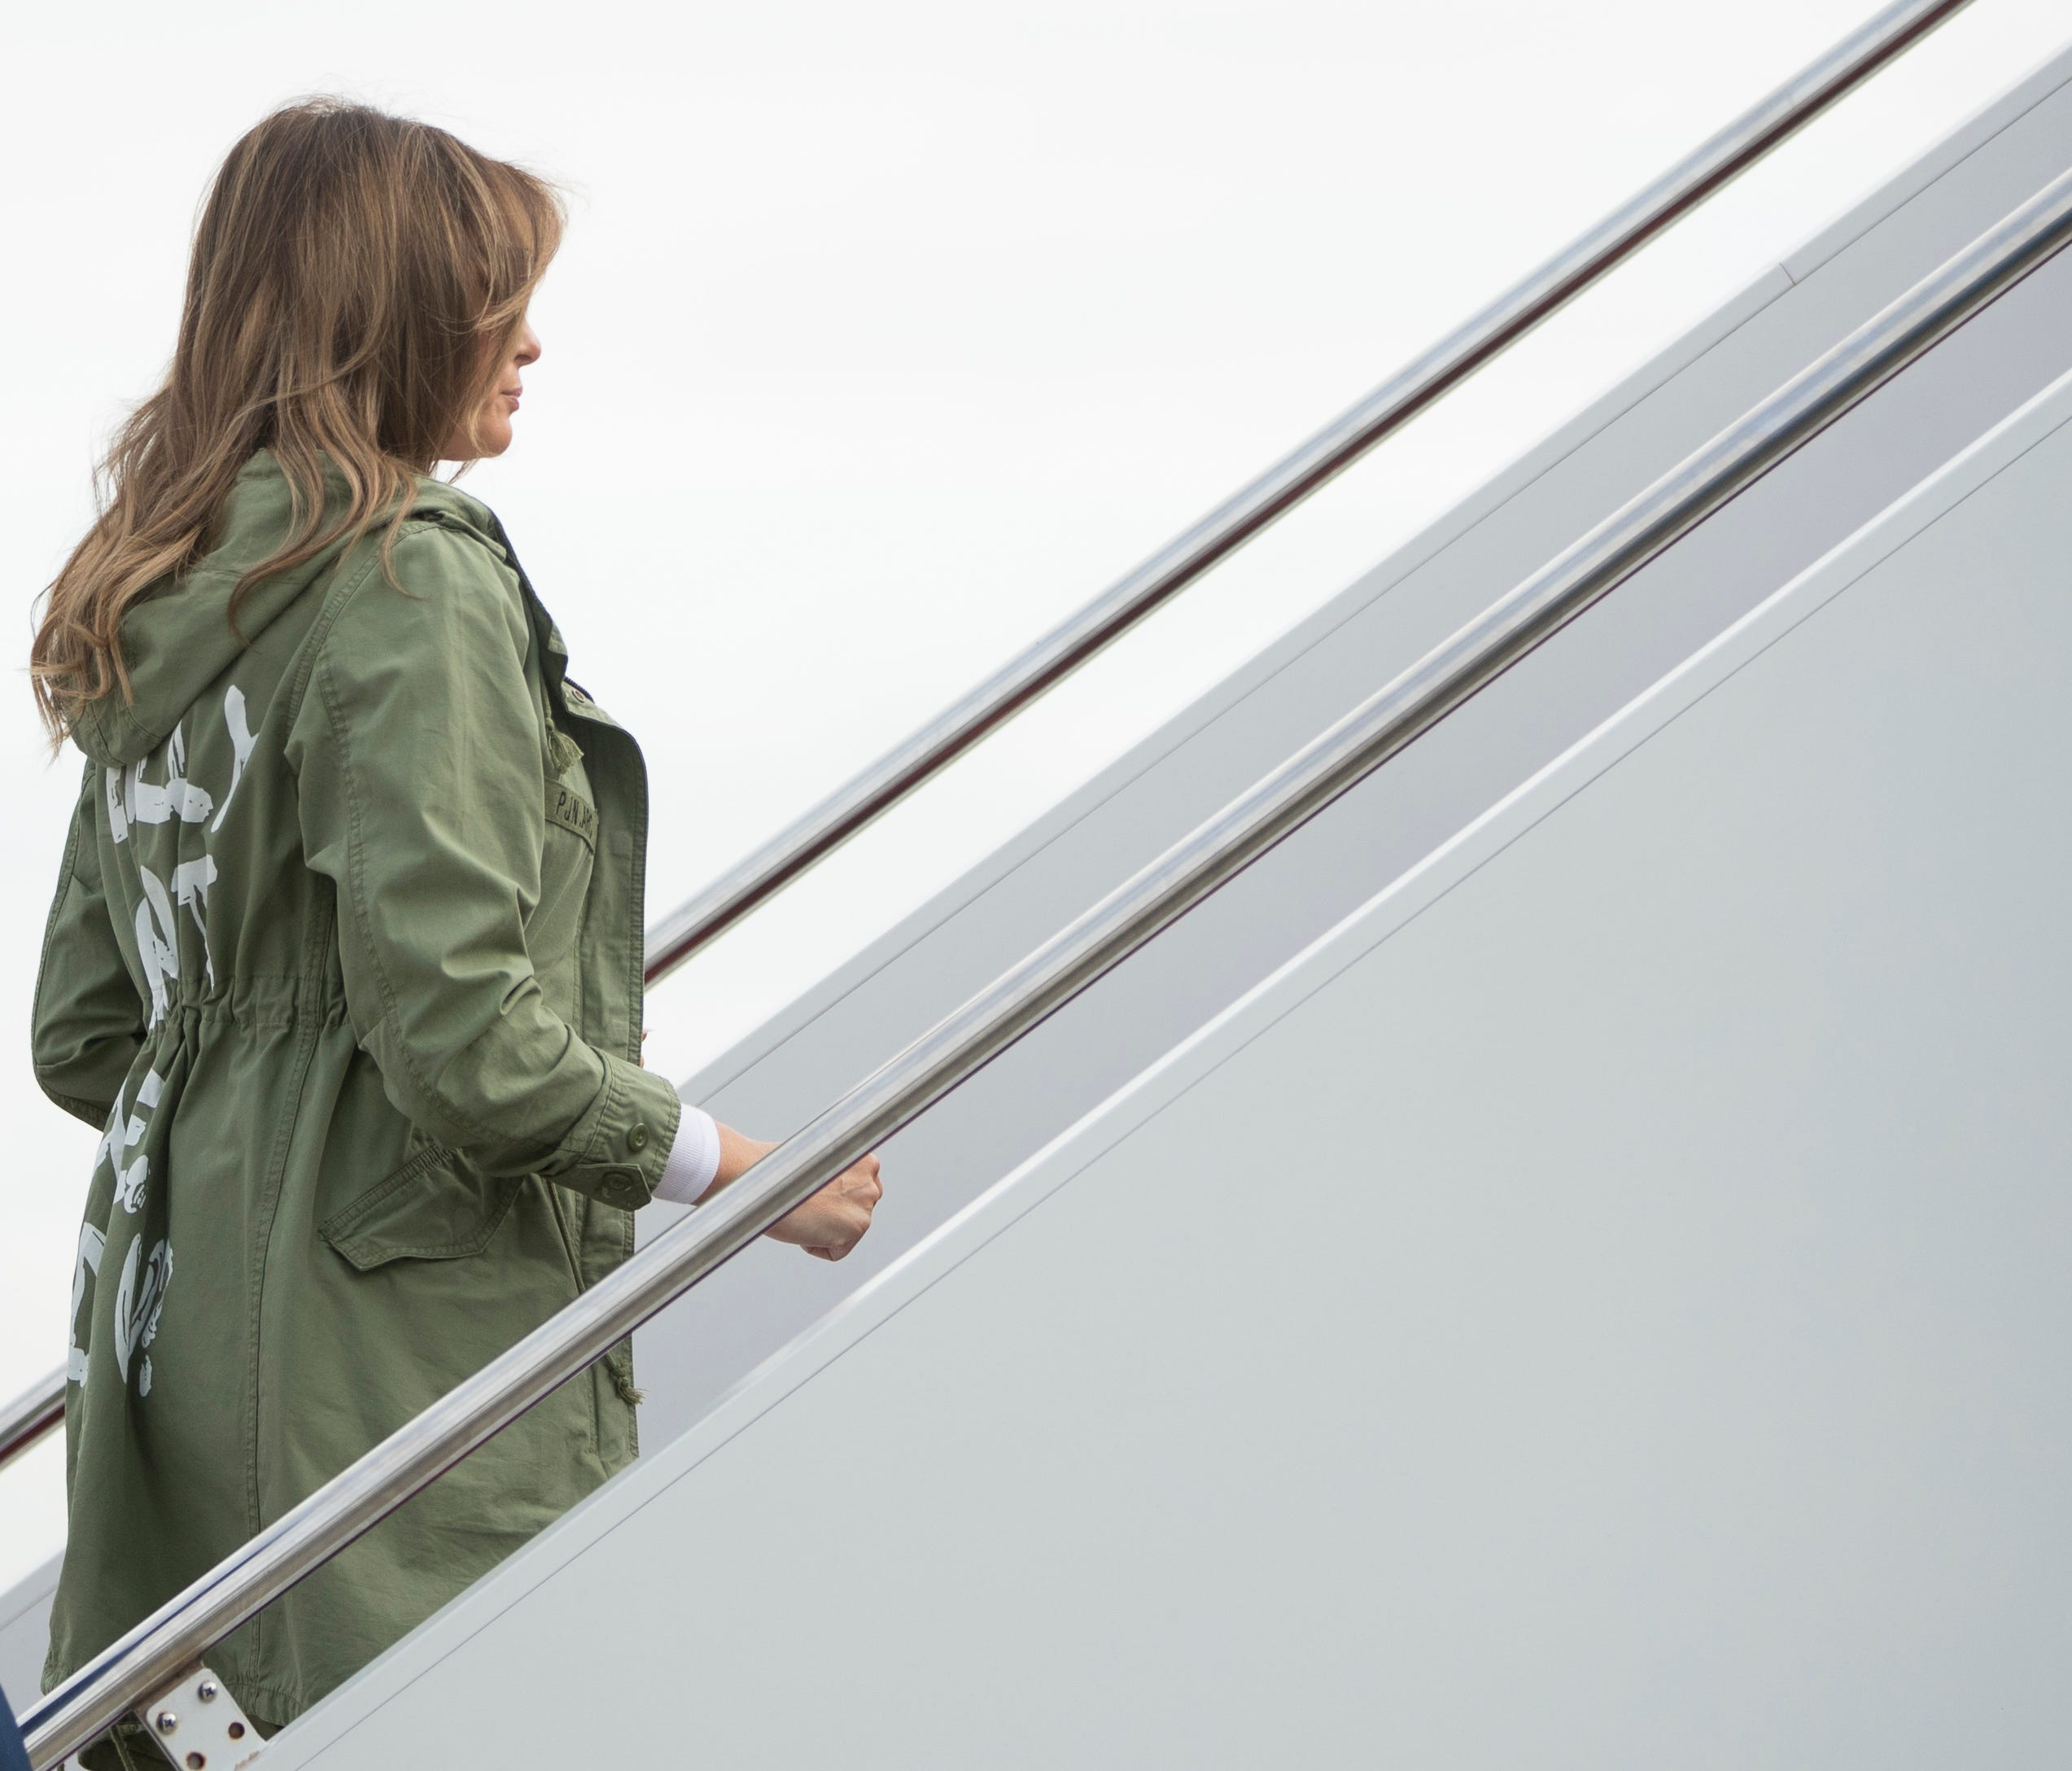 First lady Melania Trump boards a plane at Andrews Air Force Base, Md., June 21, 2018, to travel to Texas.